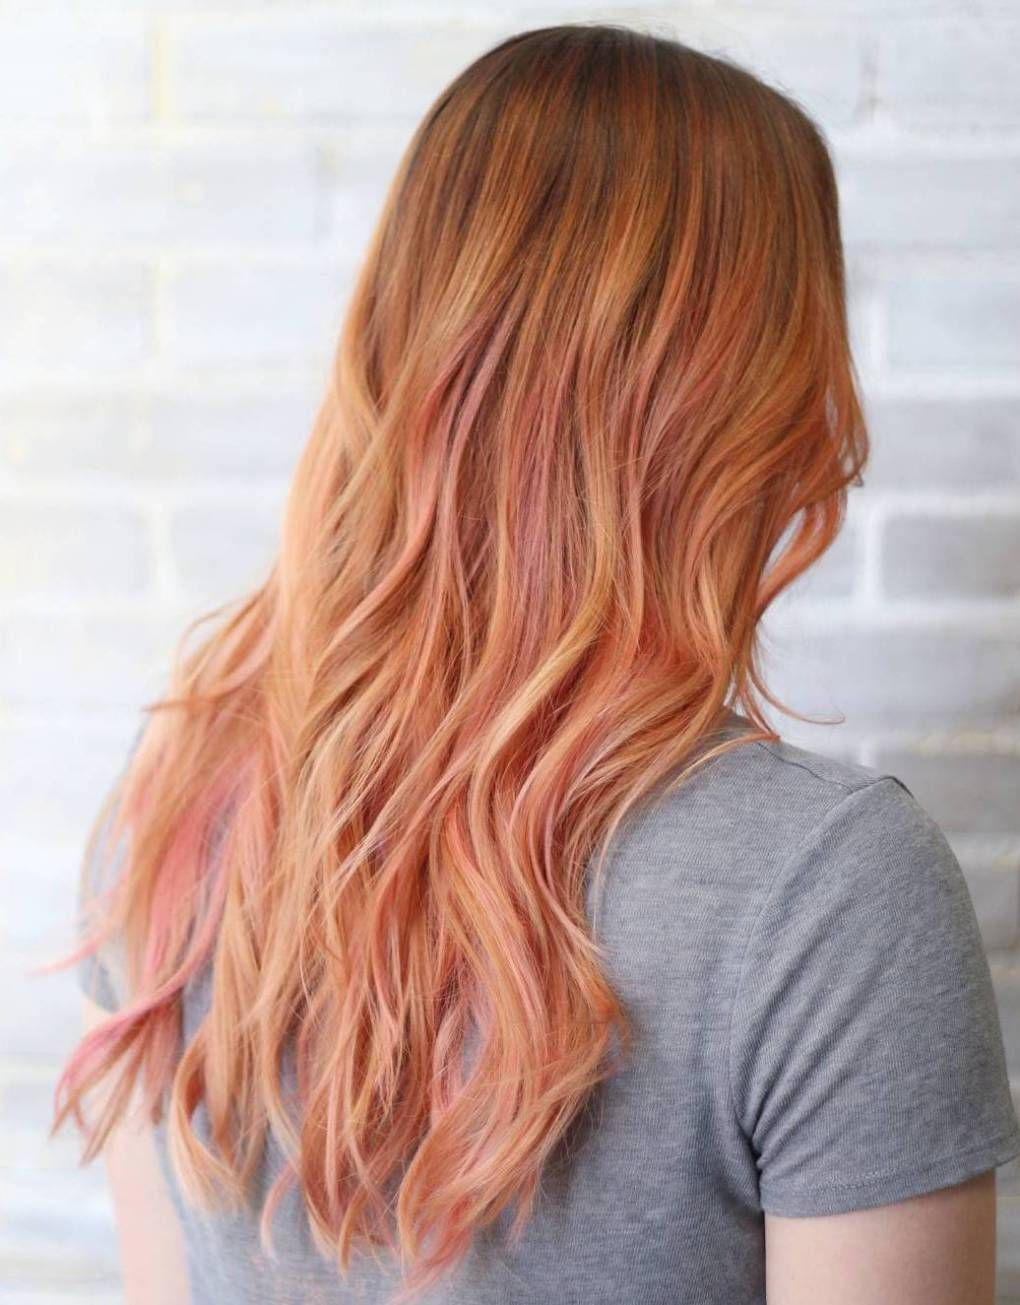 60 Best Strawberry Blonde Hair Ideas To Astonish Everyone H A I R